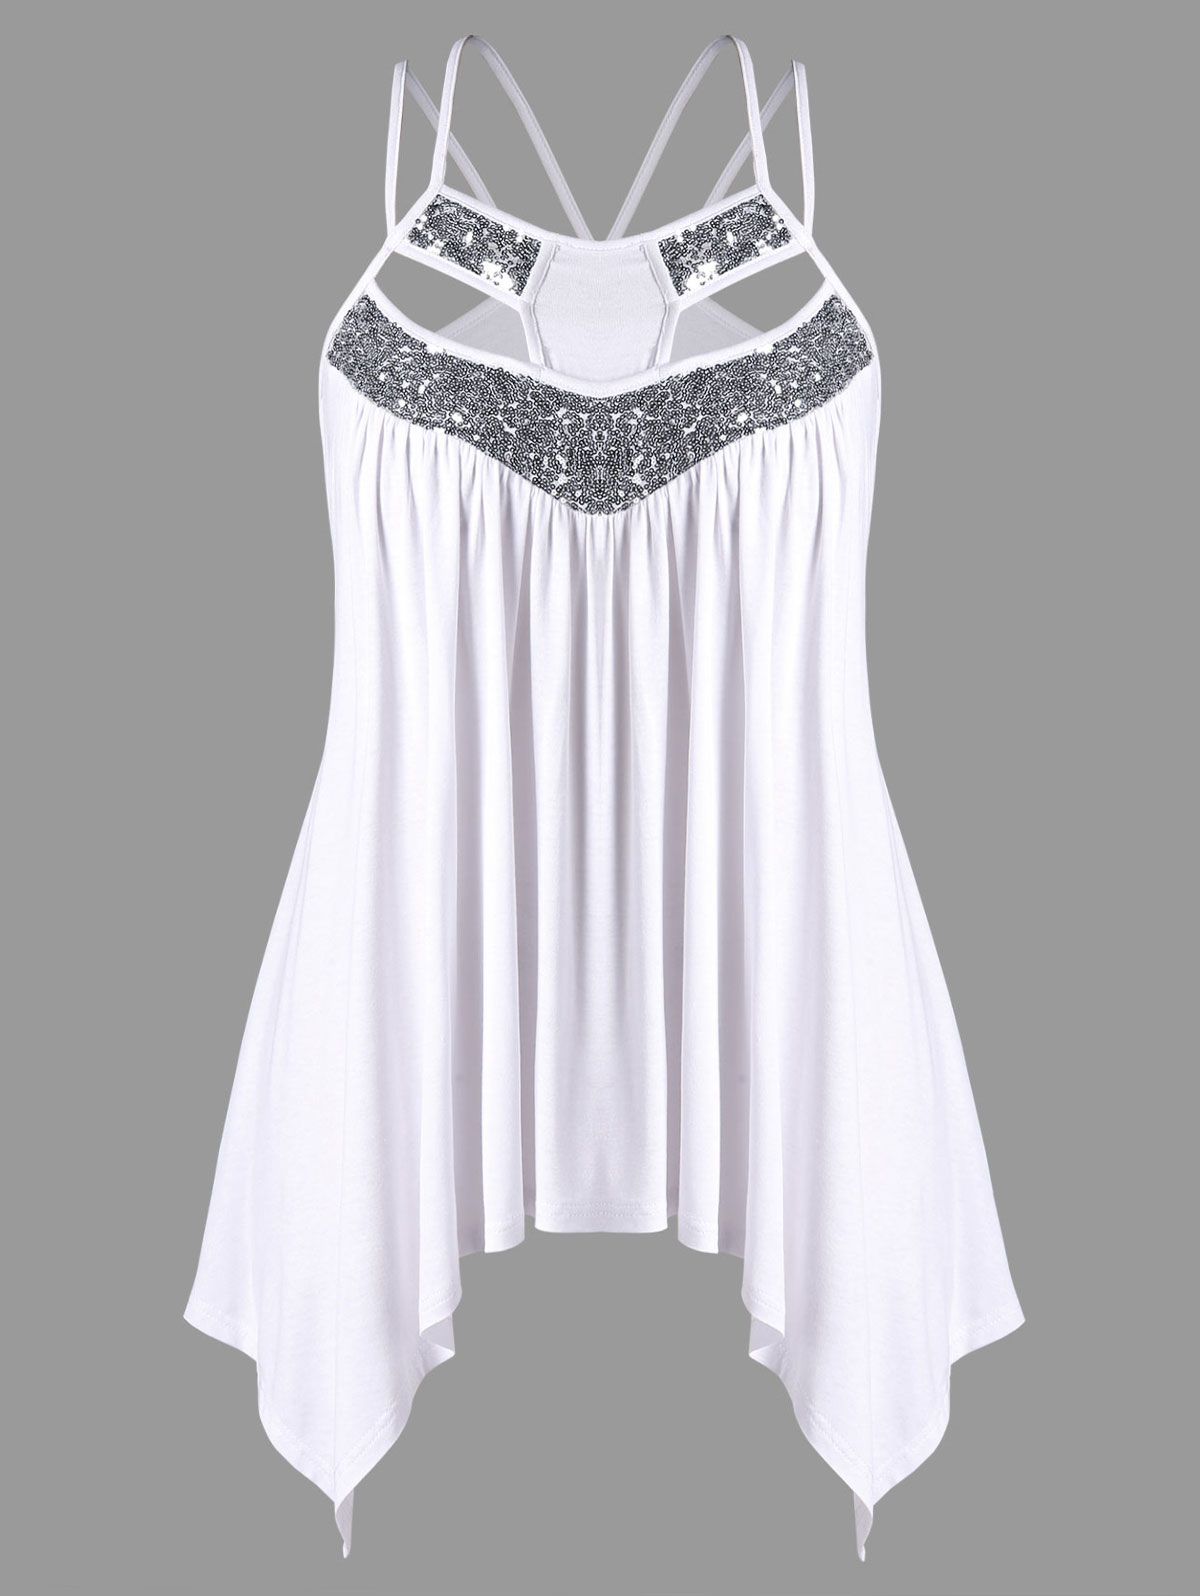 30f4a3cc40b Season Summer Embellishment Sequins Pattern Type Solid Weight 0.2700kg.  Package Contents 1 x Tank Top